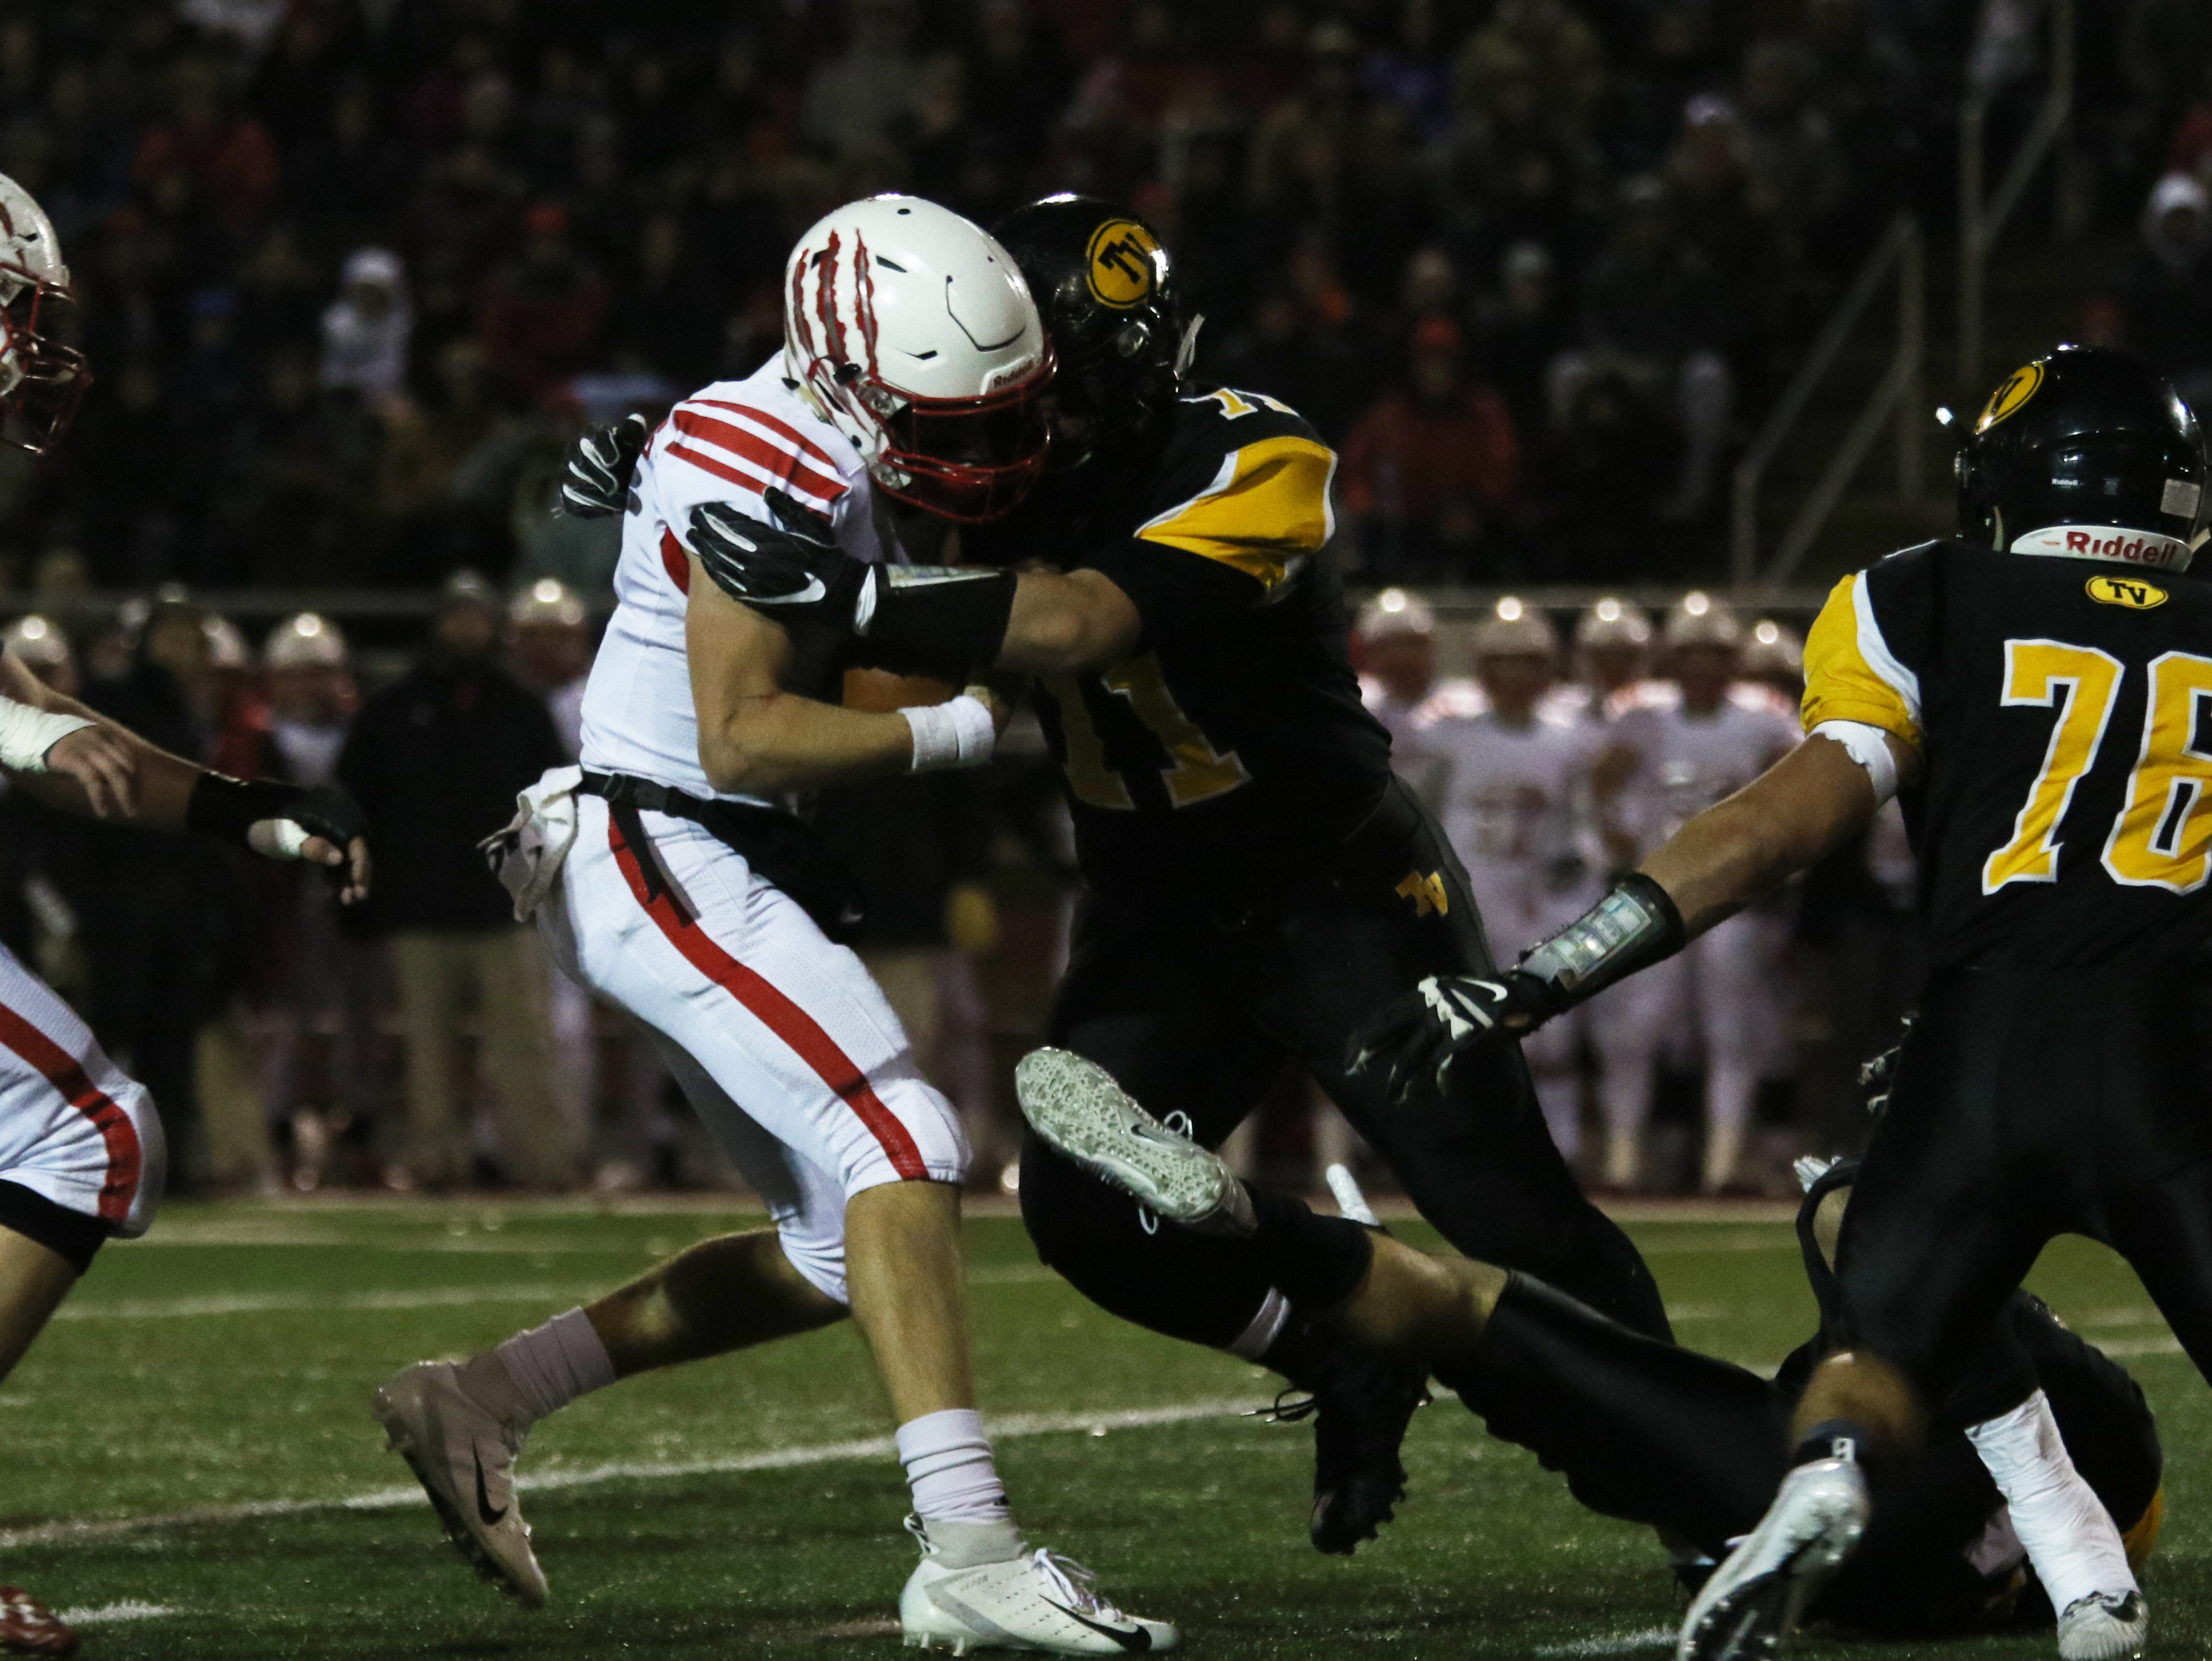 Tri-Valley's Garrett French tackles a Wadsworth ball carrier.